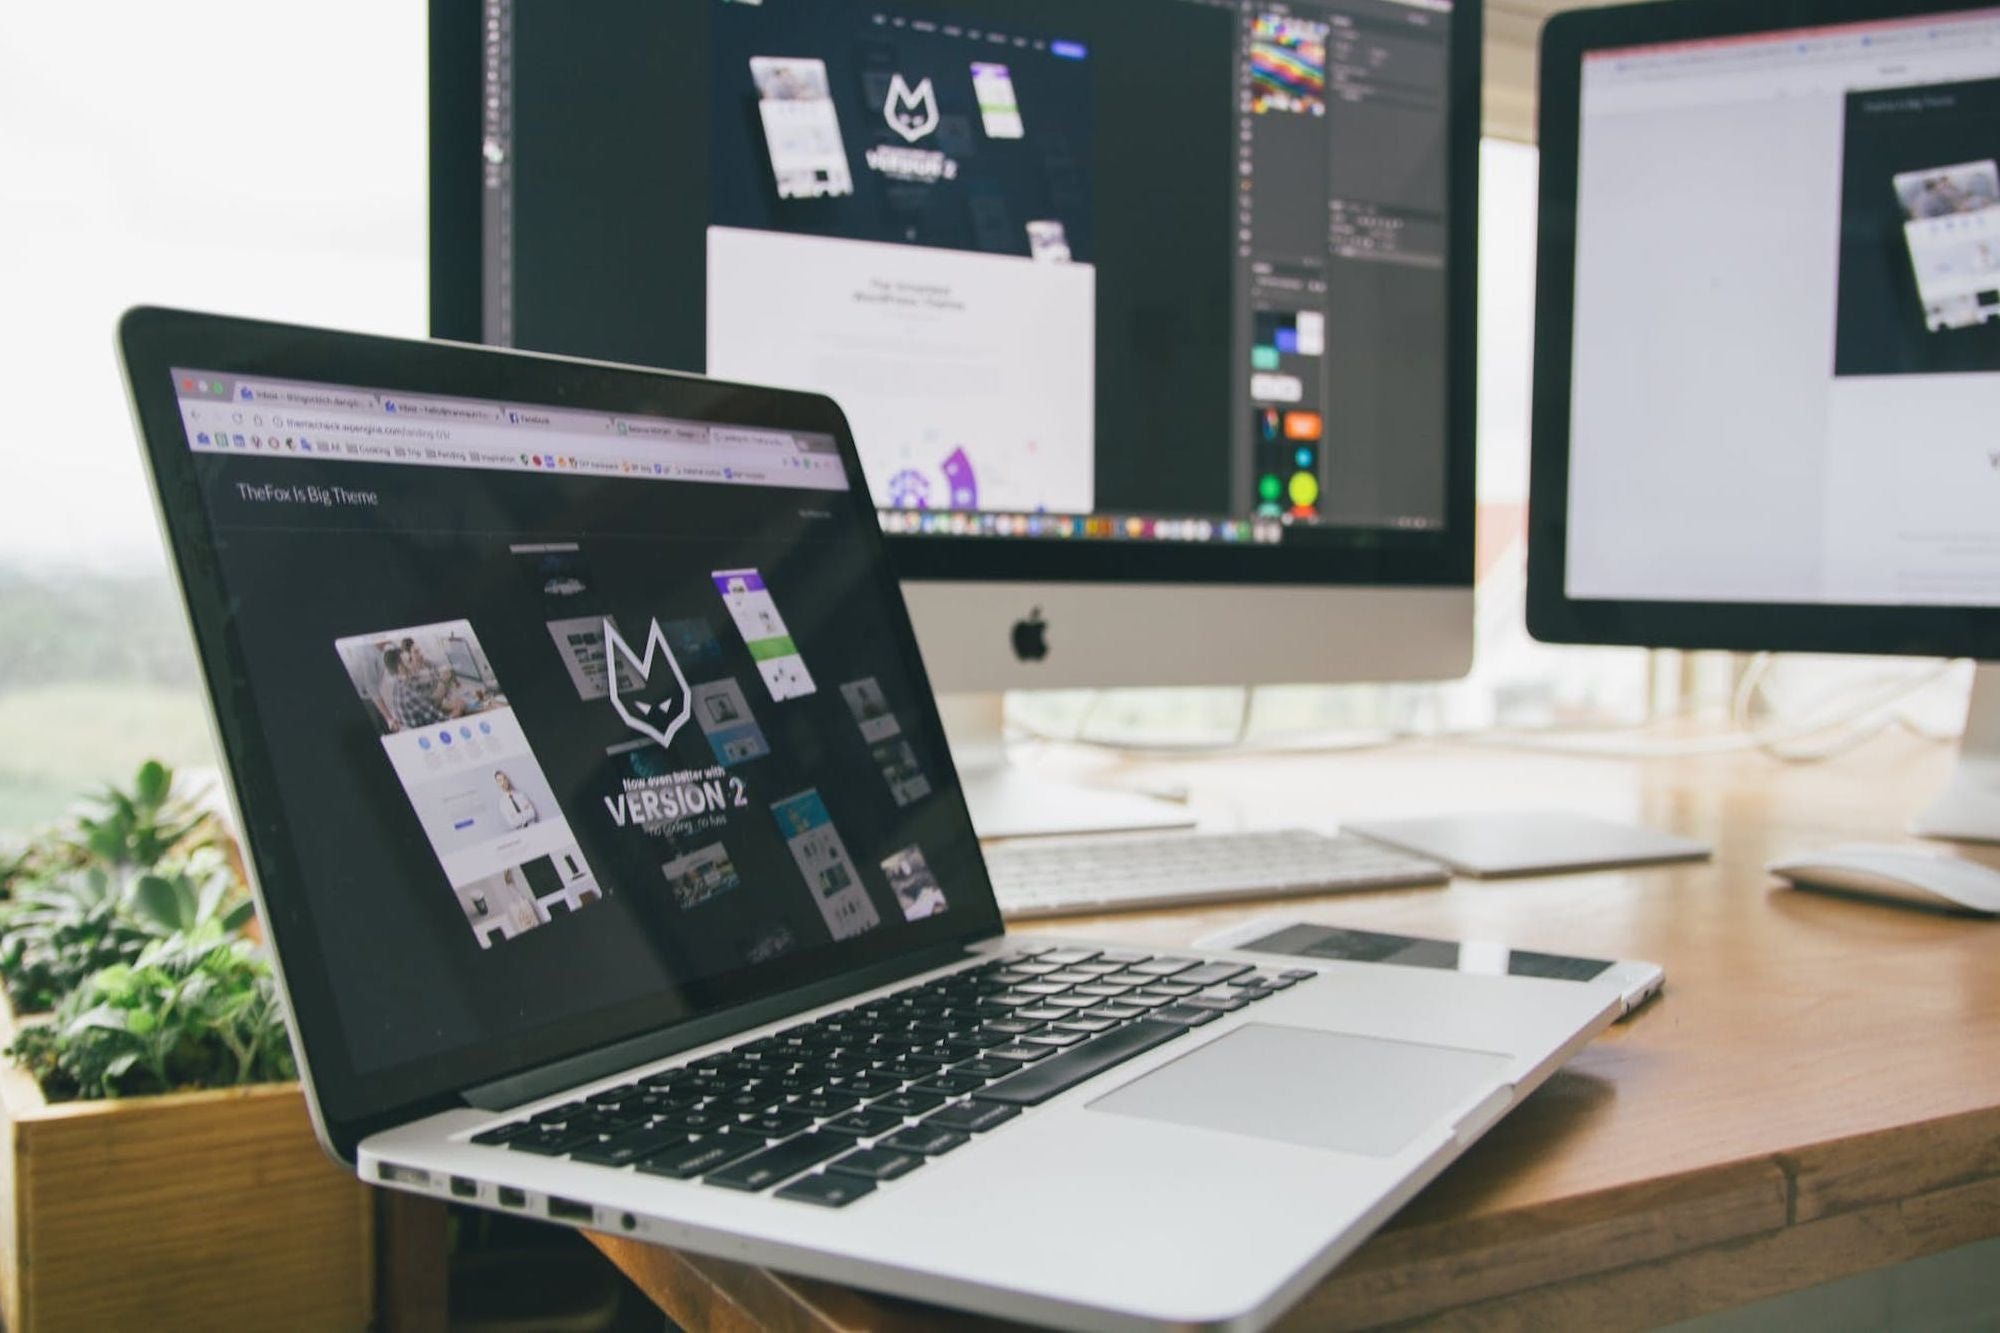 Get Access to 70,000 Design Assets for Just $50 with This Limited-Time Deal